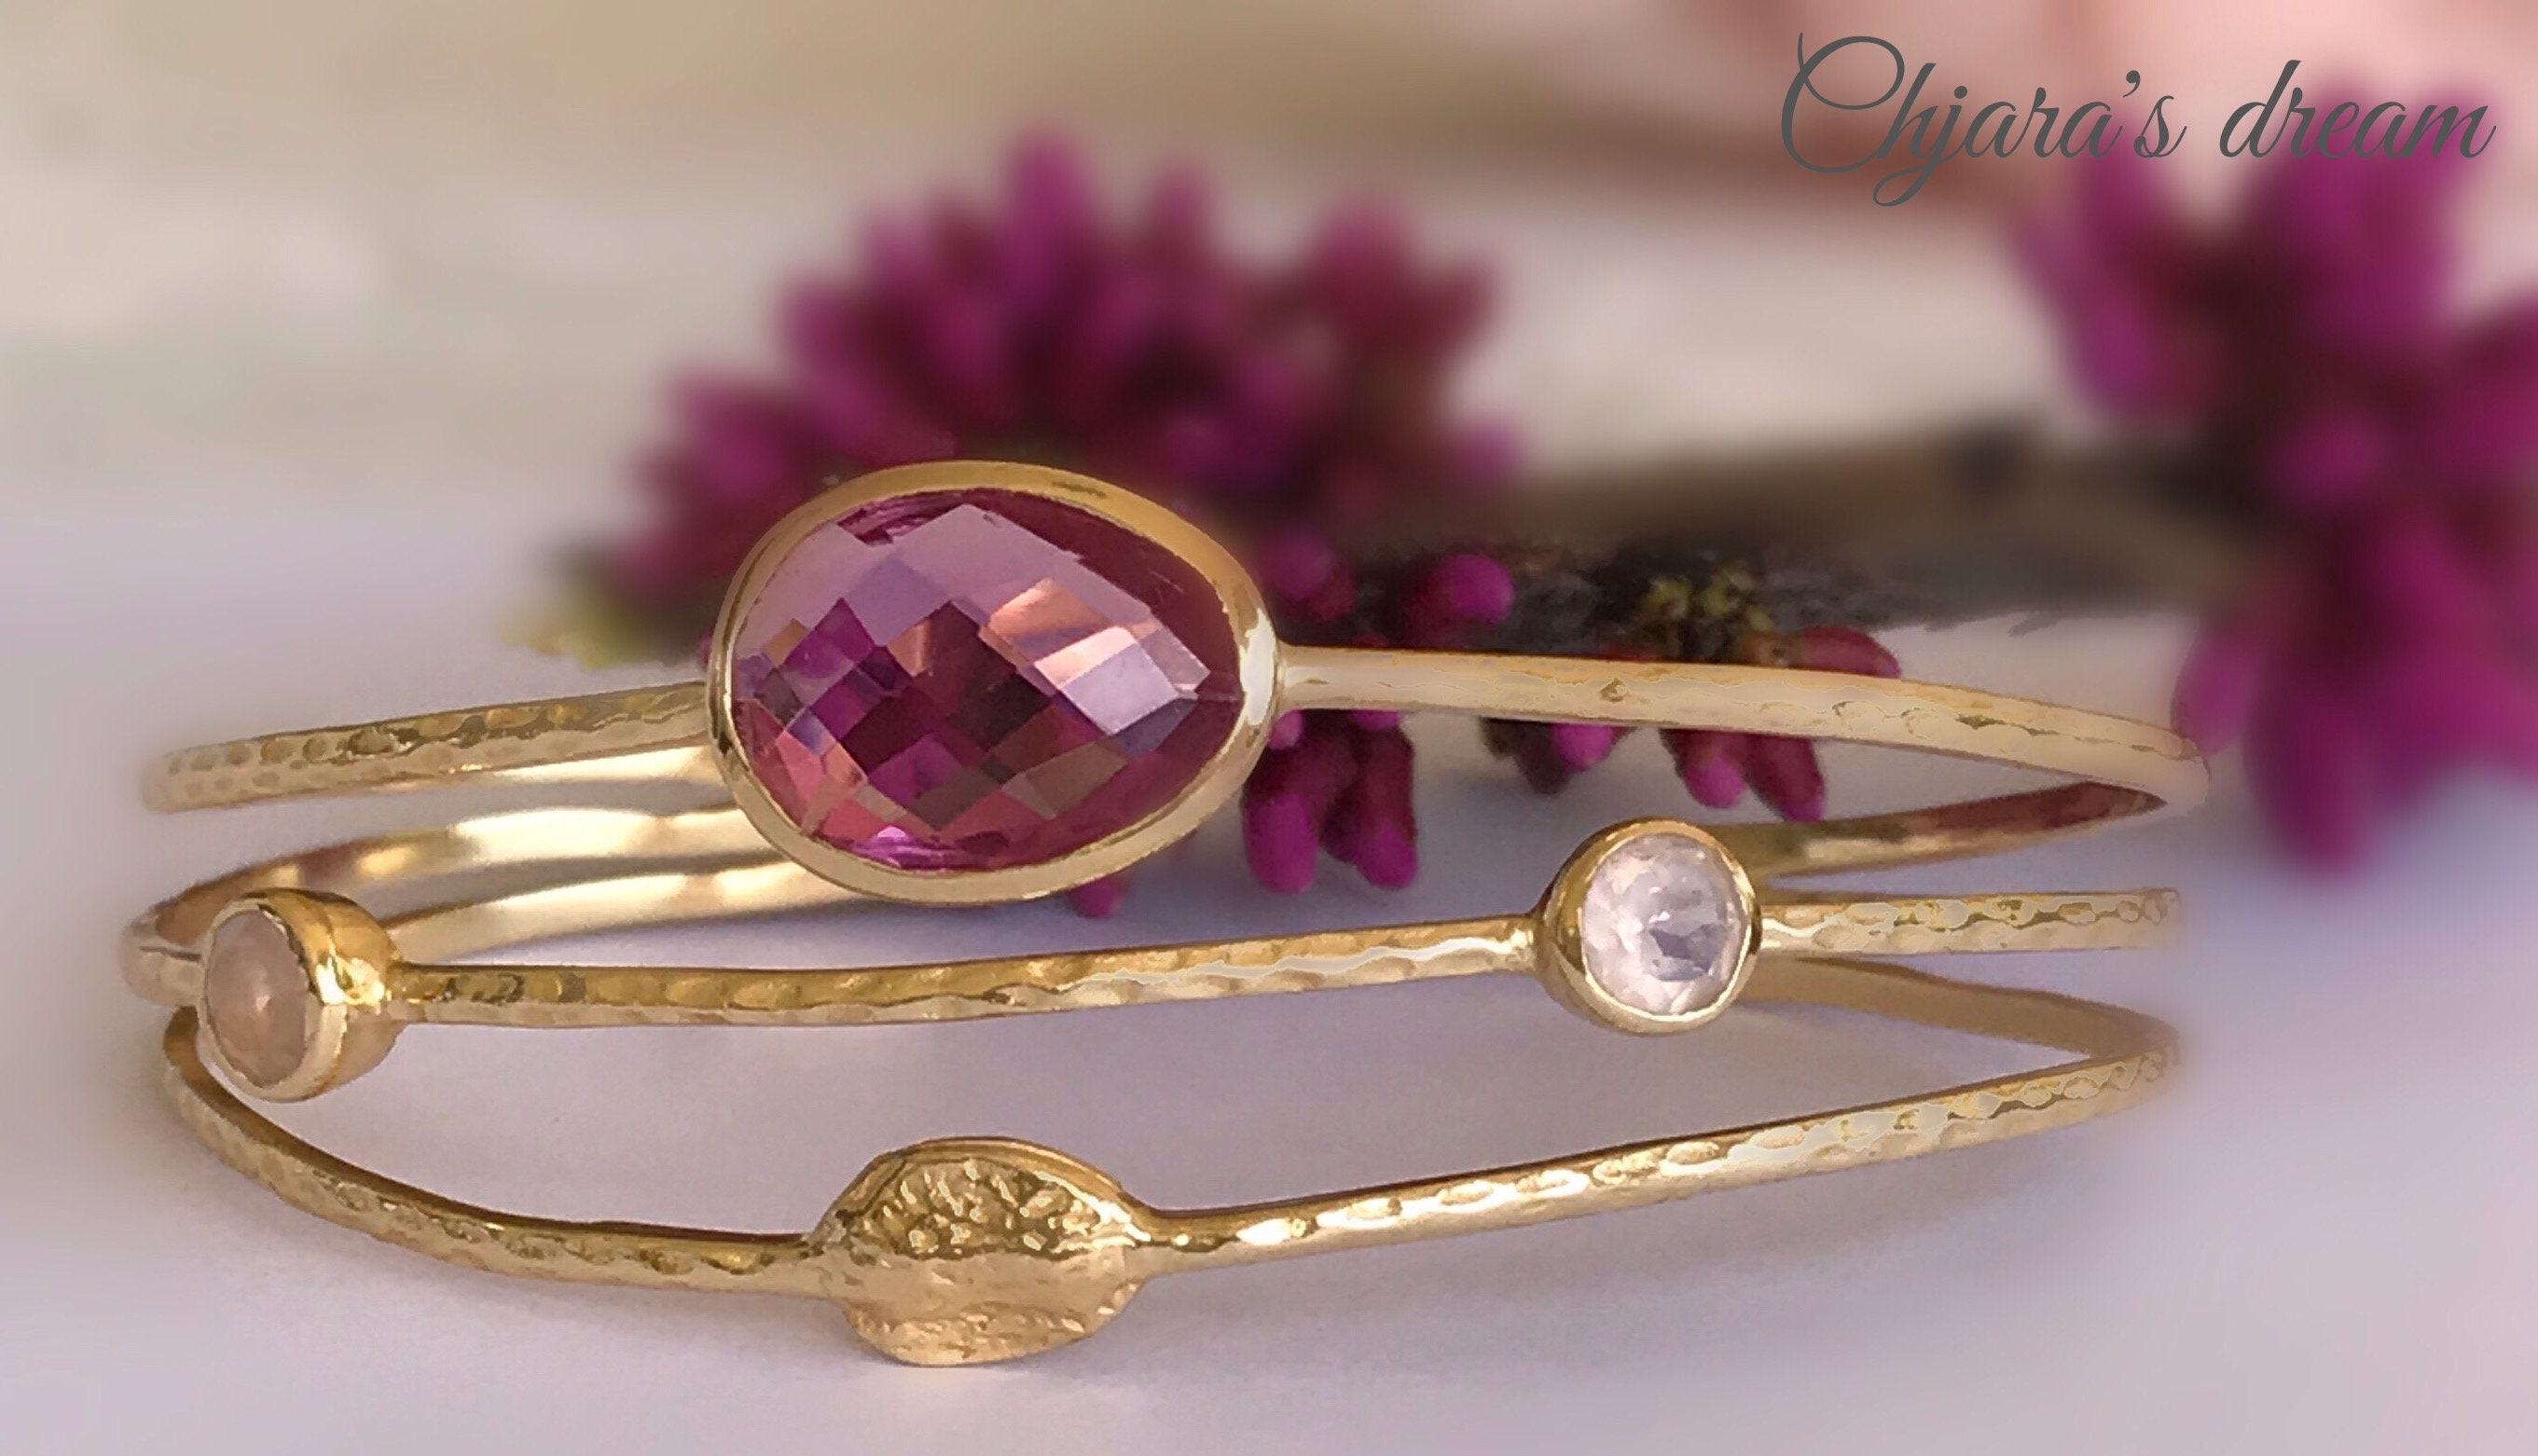 cut bangle fashion an judith products amethyst a bezel bracelet arnell bangles featuring jewelry white diamond gold and cabochon collections